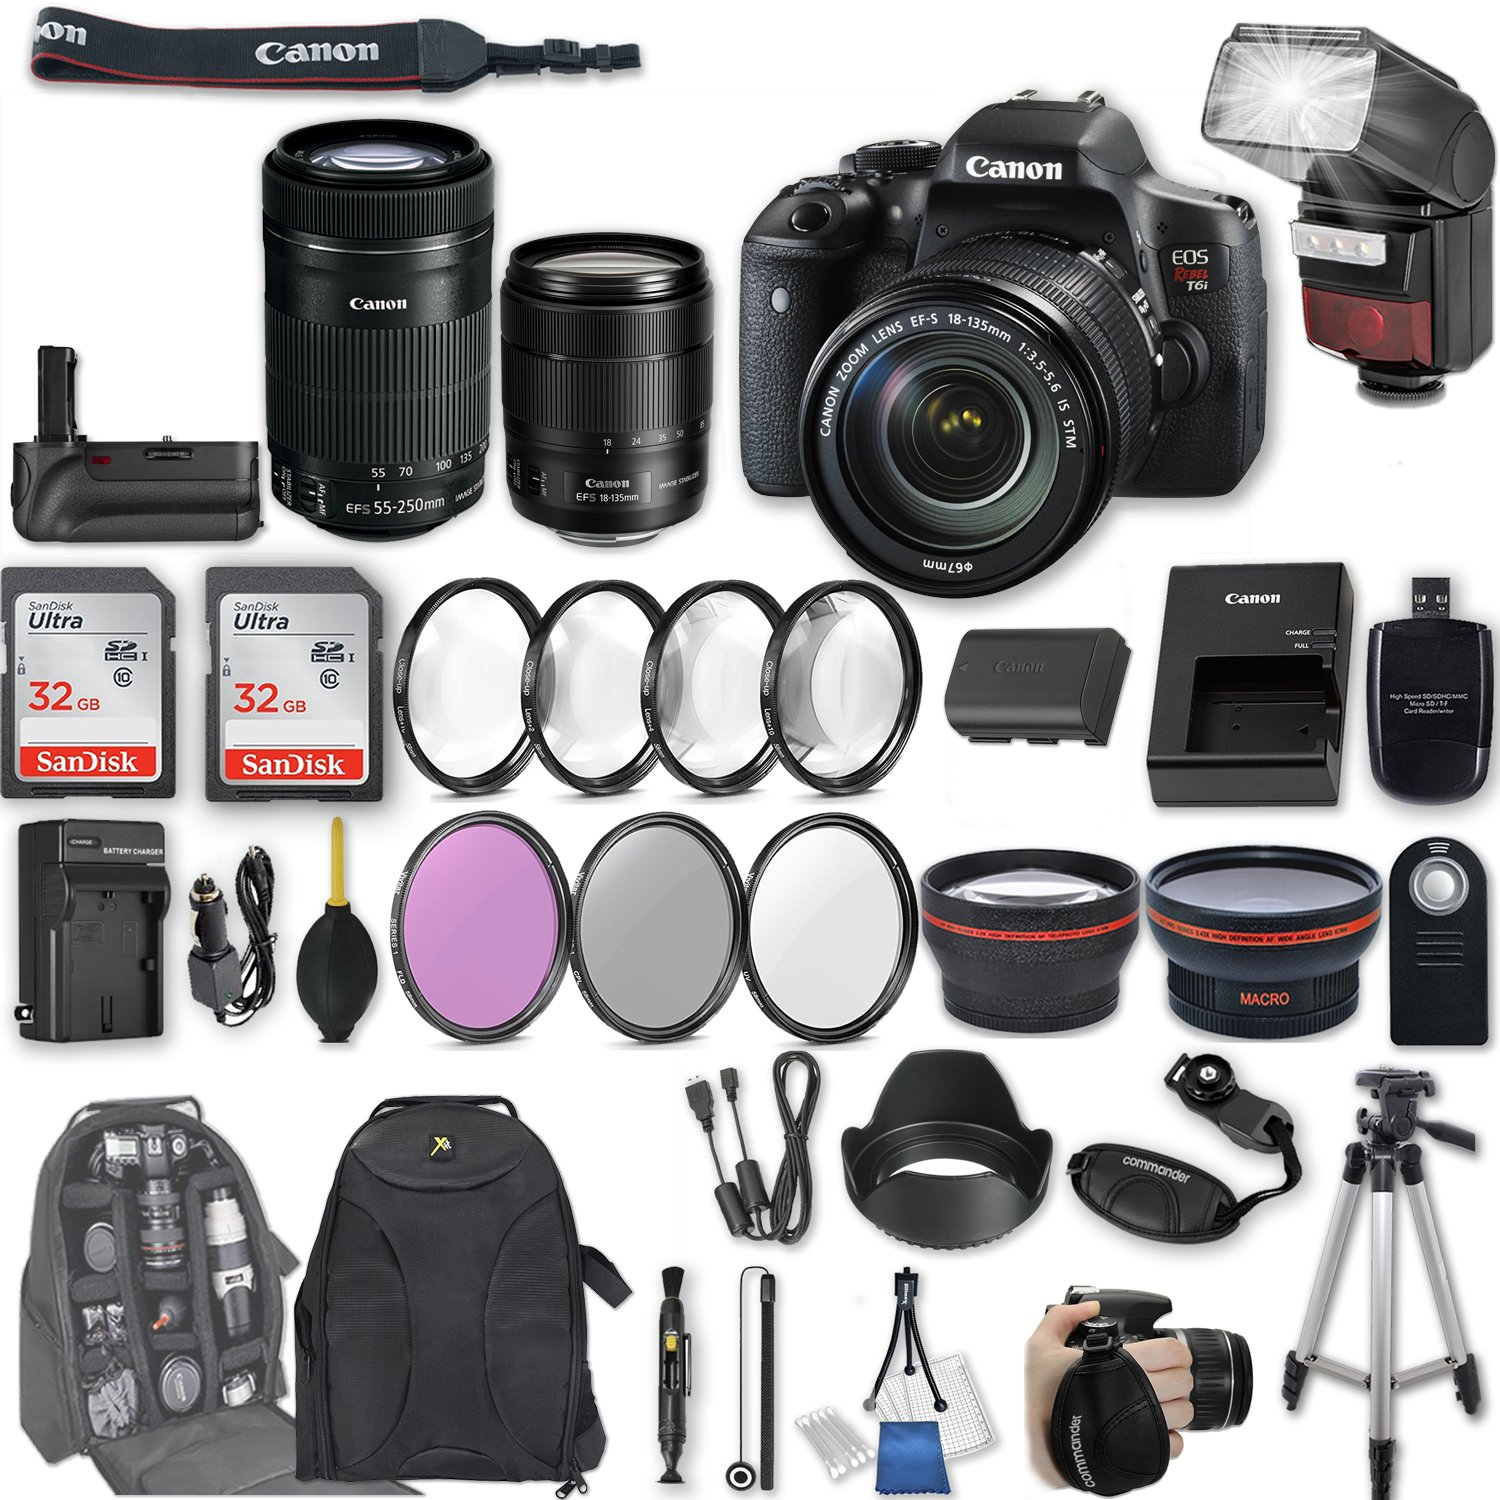 Canon EOS Rebel T6i DSLR Camera with EF-S 18-135mm f/3.5-5.6 IS STM Lens + EF-S 55-250mm f/4-5.6 IS STM Lens + 2Pcs 32GB Sandisk SD Memory + Automatic Flash + Battery Grip + Filter & Macro Kits + More by Canon